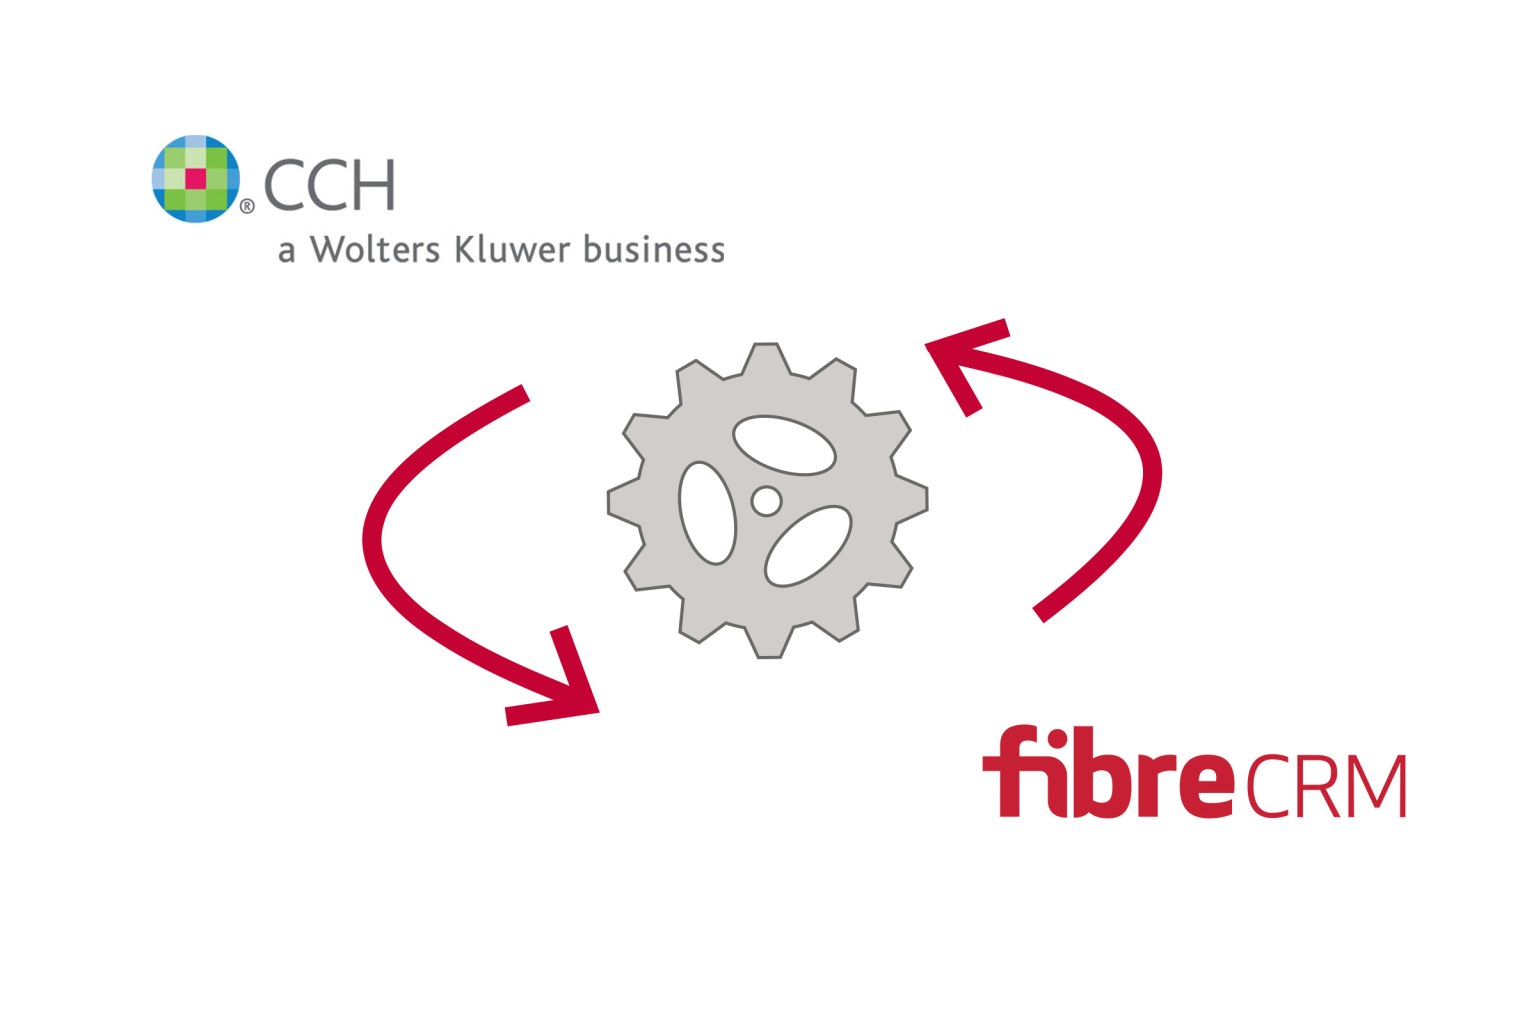 FibreCRM and CCH Central Integration